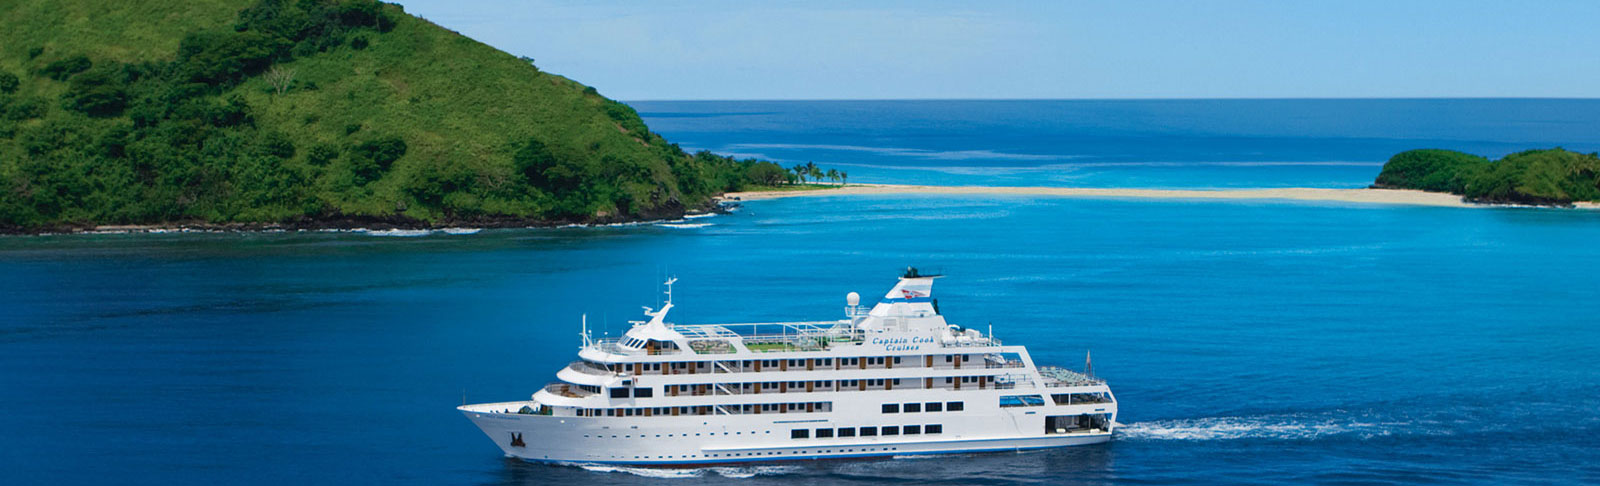 fiji wedding crusie